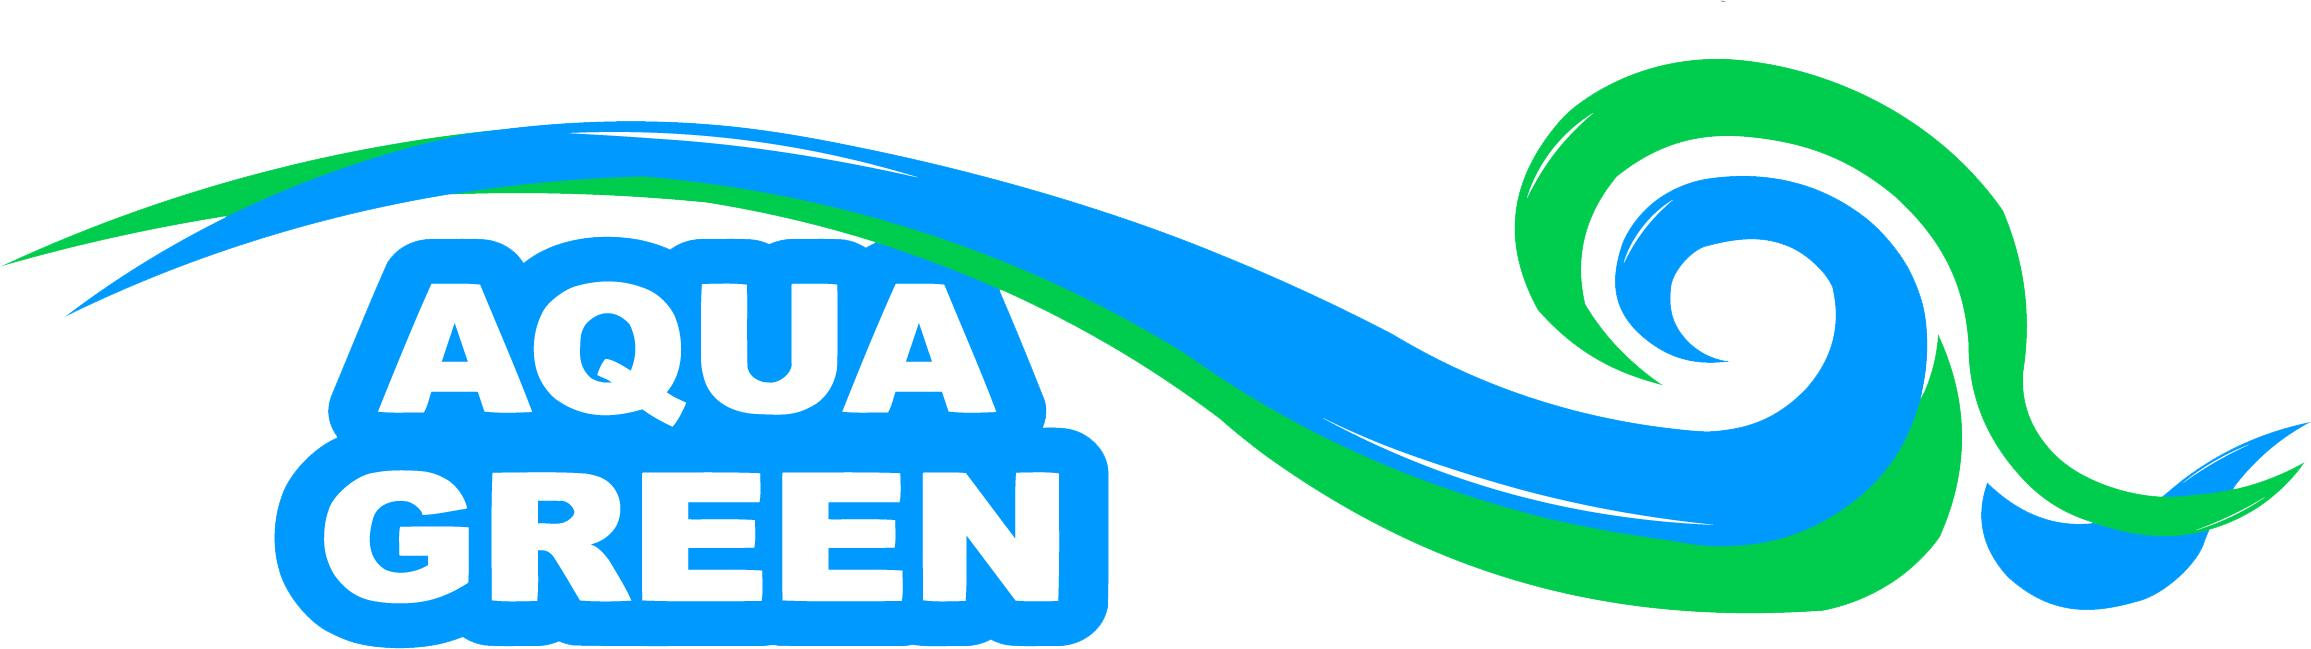 aquagreen logo_25